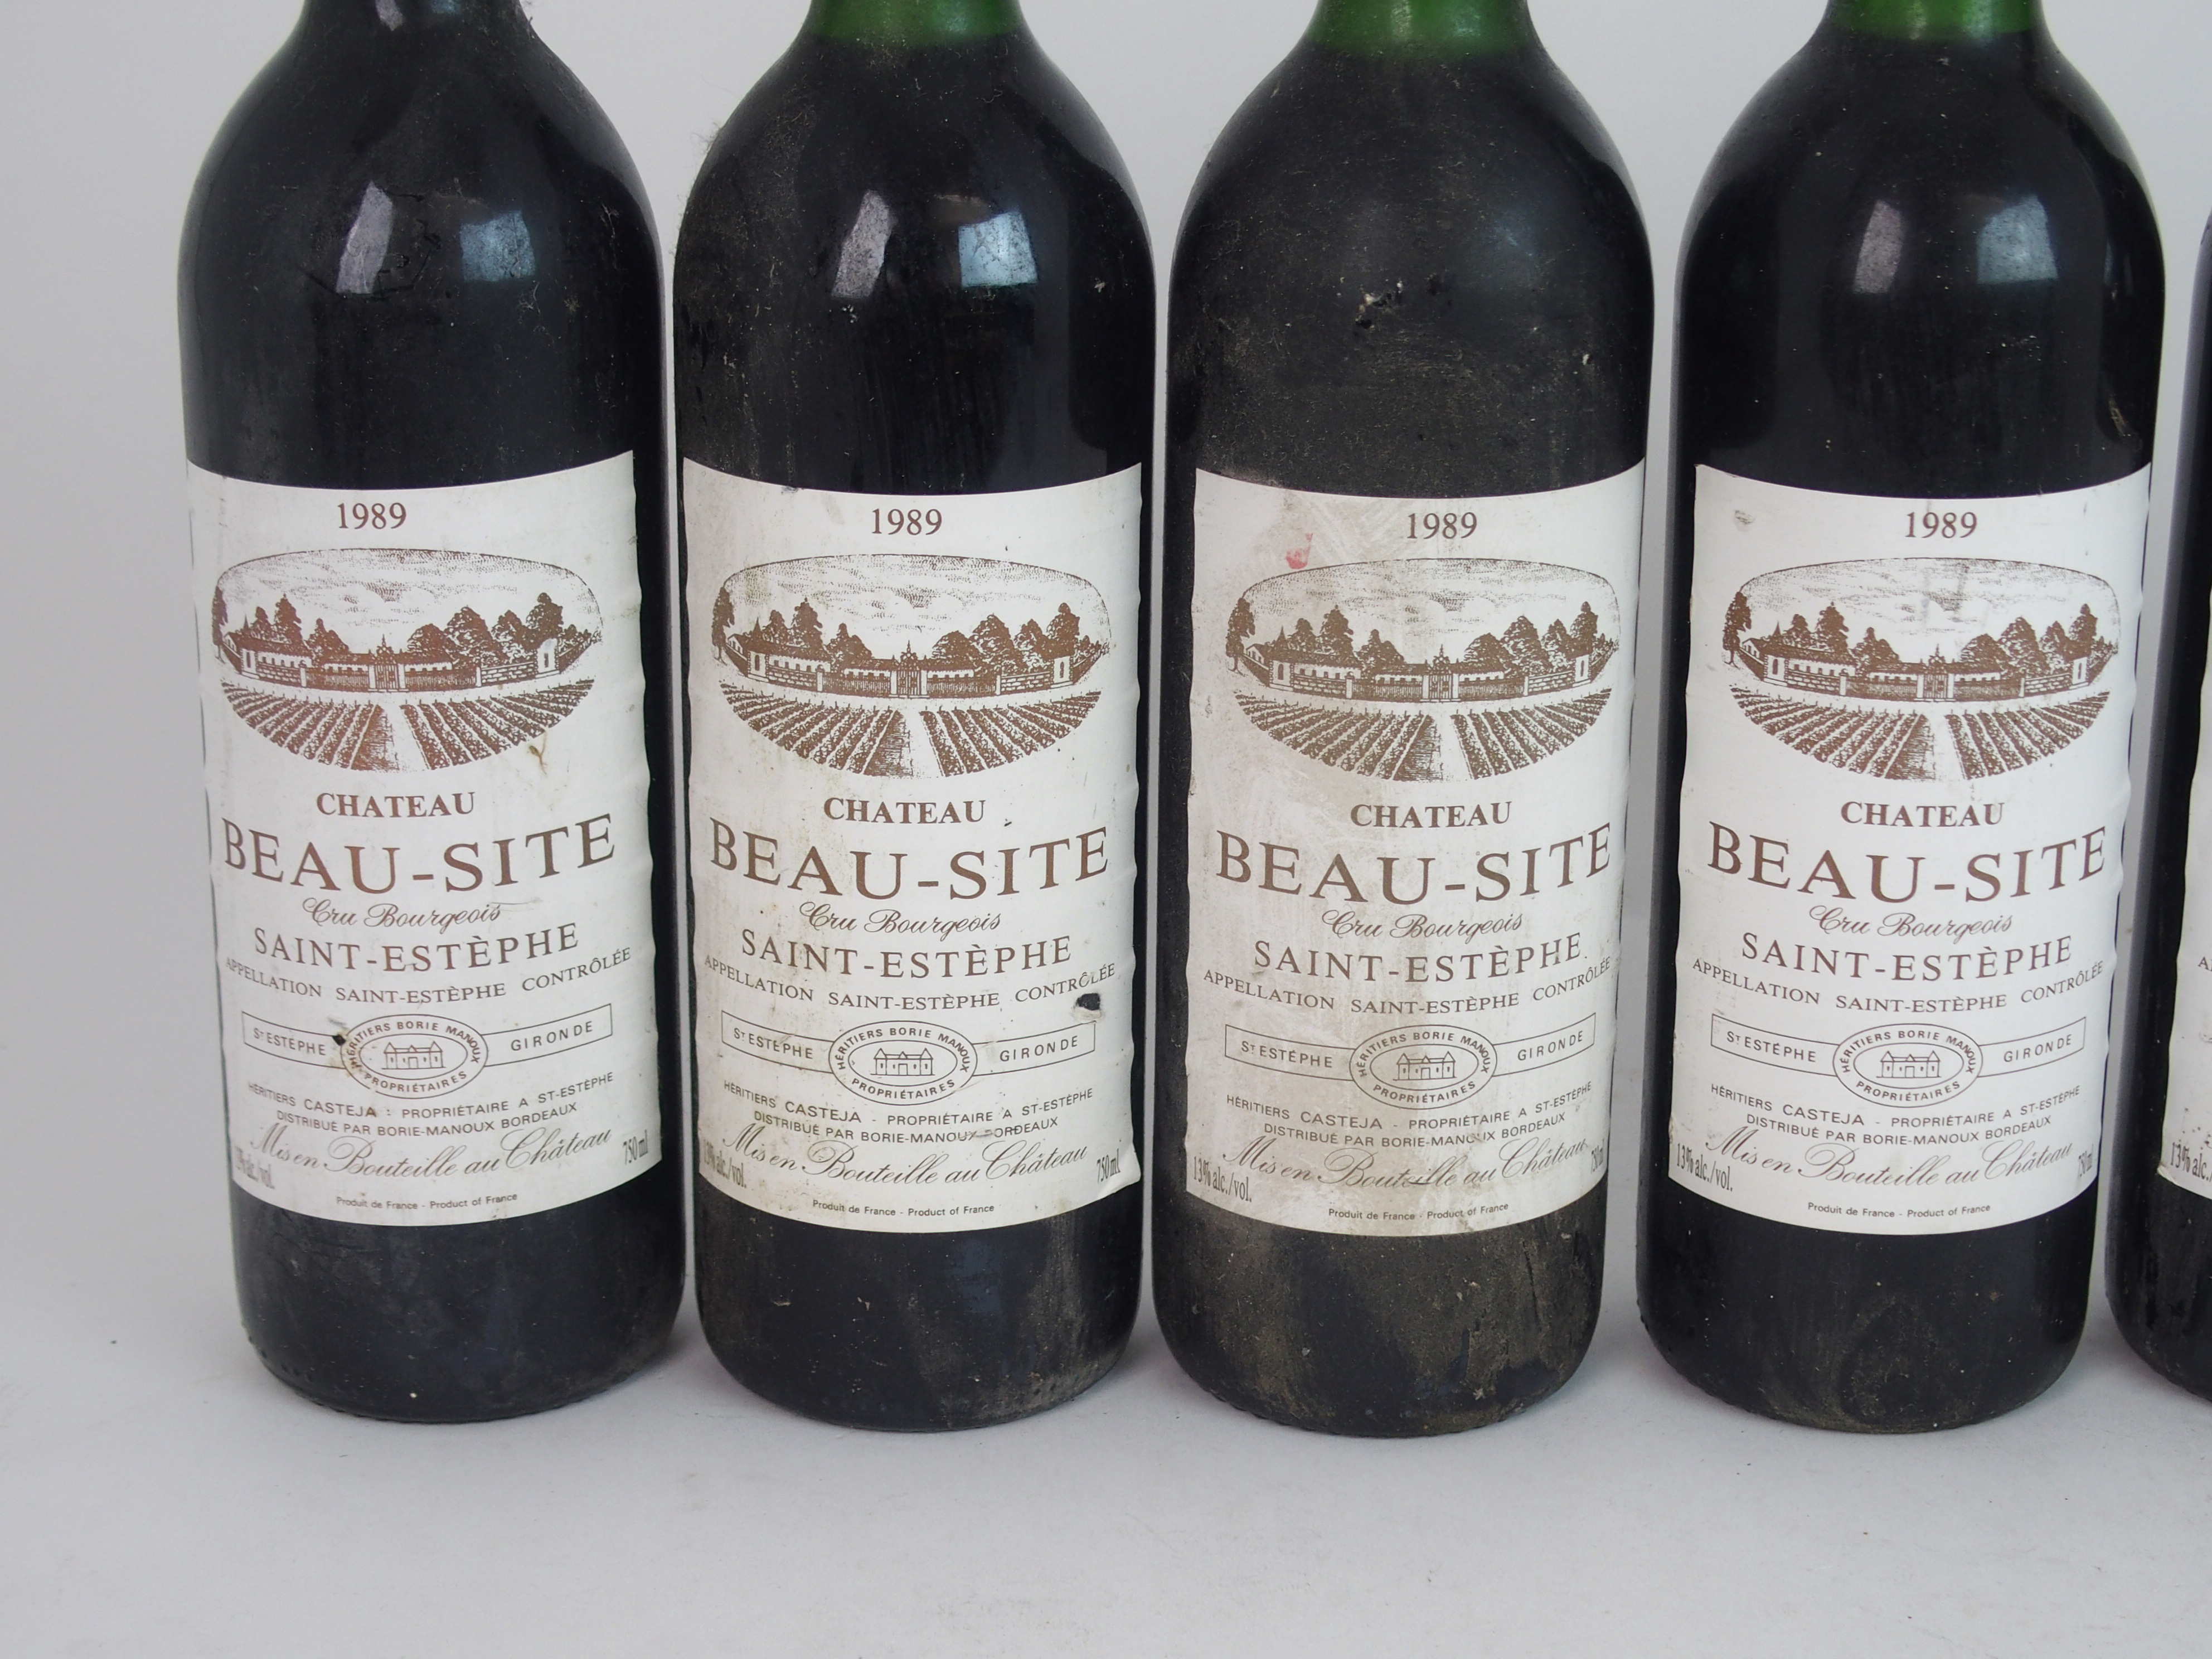 ELEVEN BOTTLES OF CHATEAU BEAU-SITE, SAINT ESTEPHE, 1989 13%vol, 750ml, labels stained and some torn - Image 3 of 8